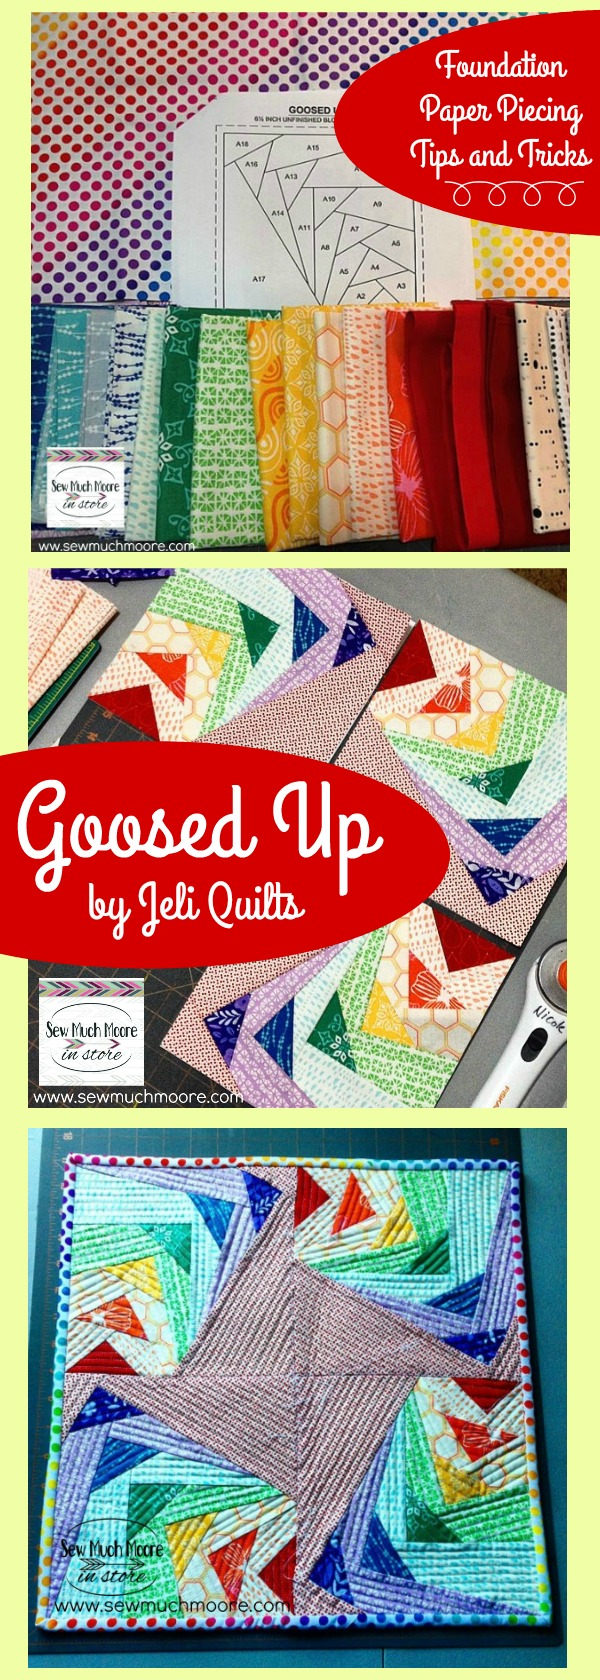 Jeli Quilts Rainbow Mini Quilt DIY